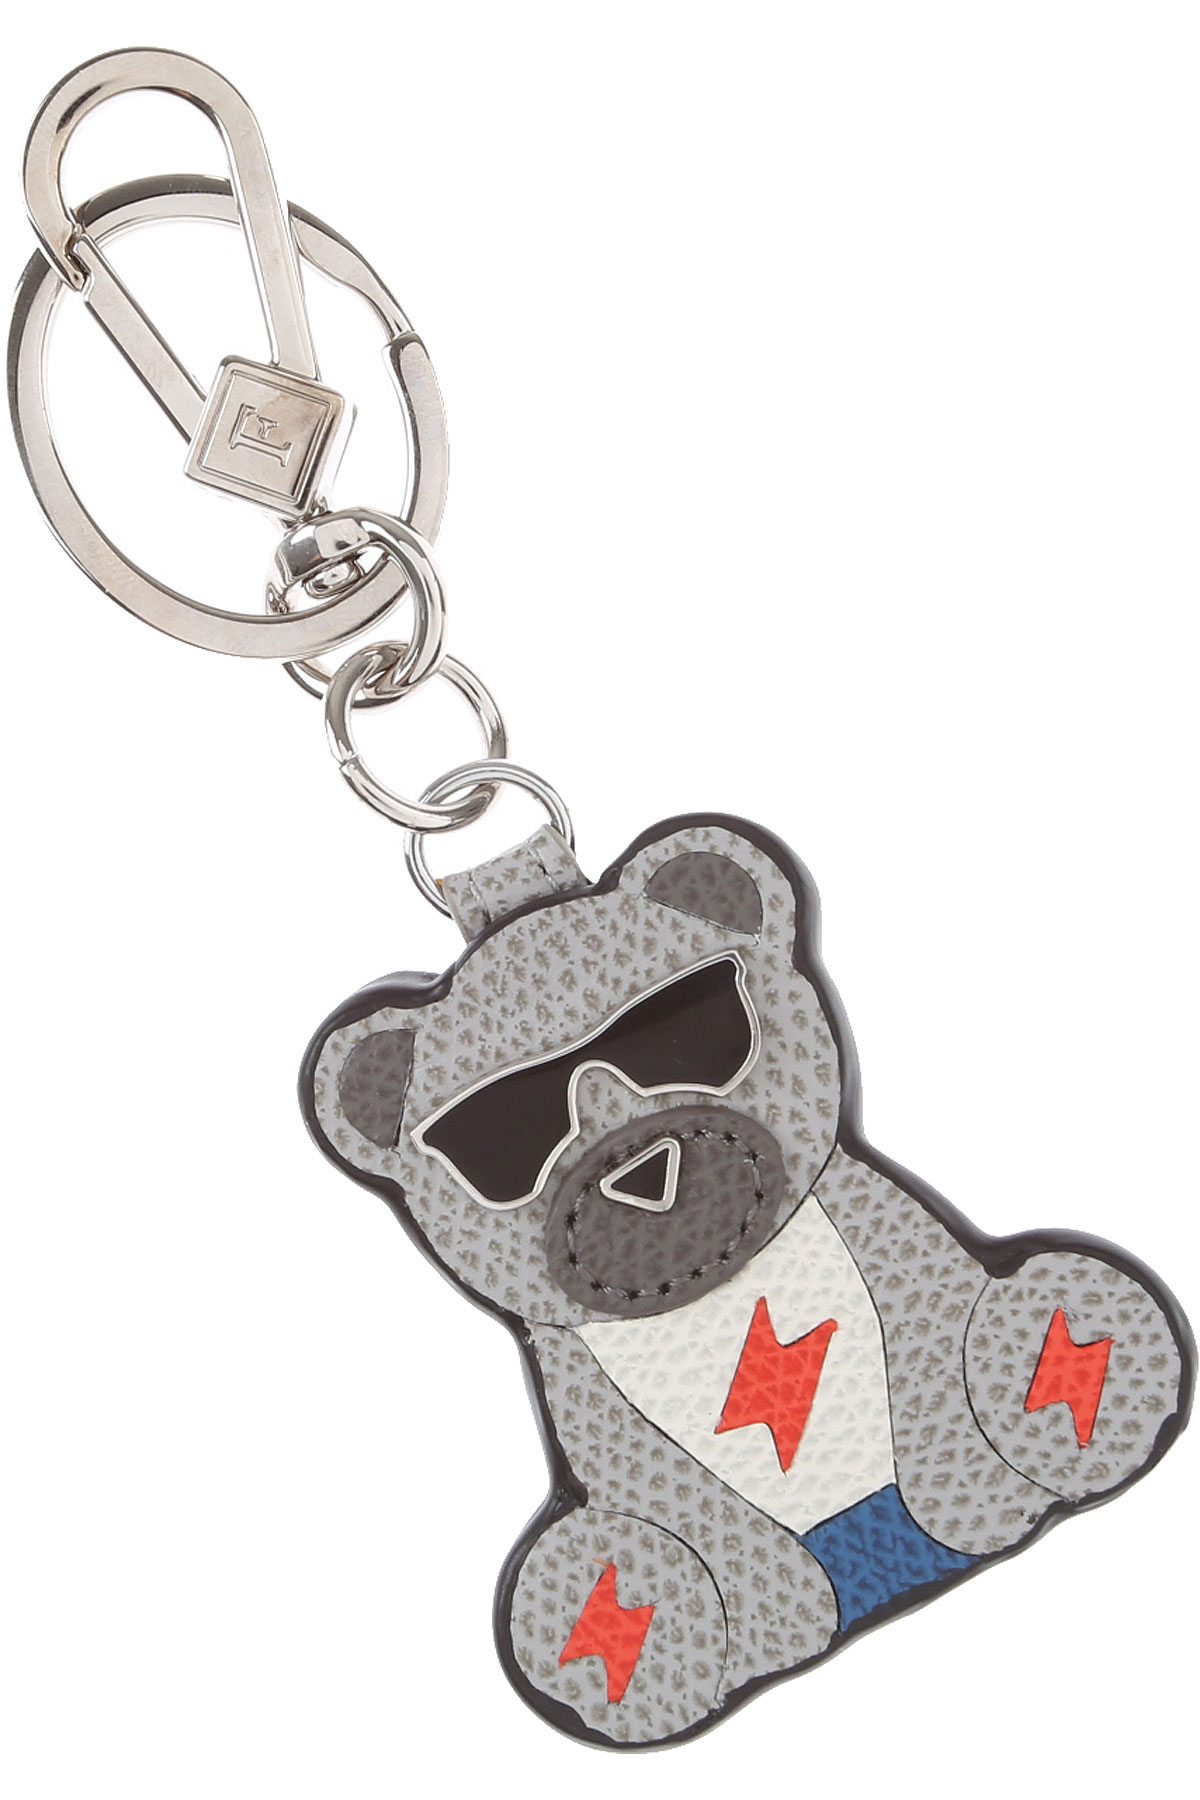 Furla Key Chain for Women, Key Ring On Sale in Outlet, Grey, Leather, 2019